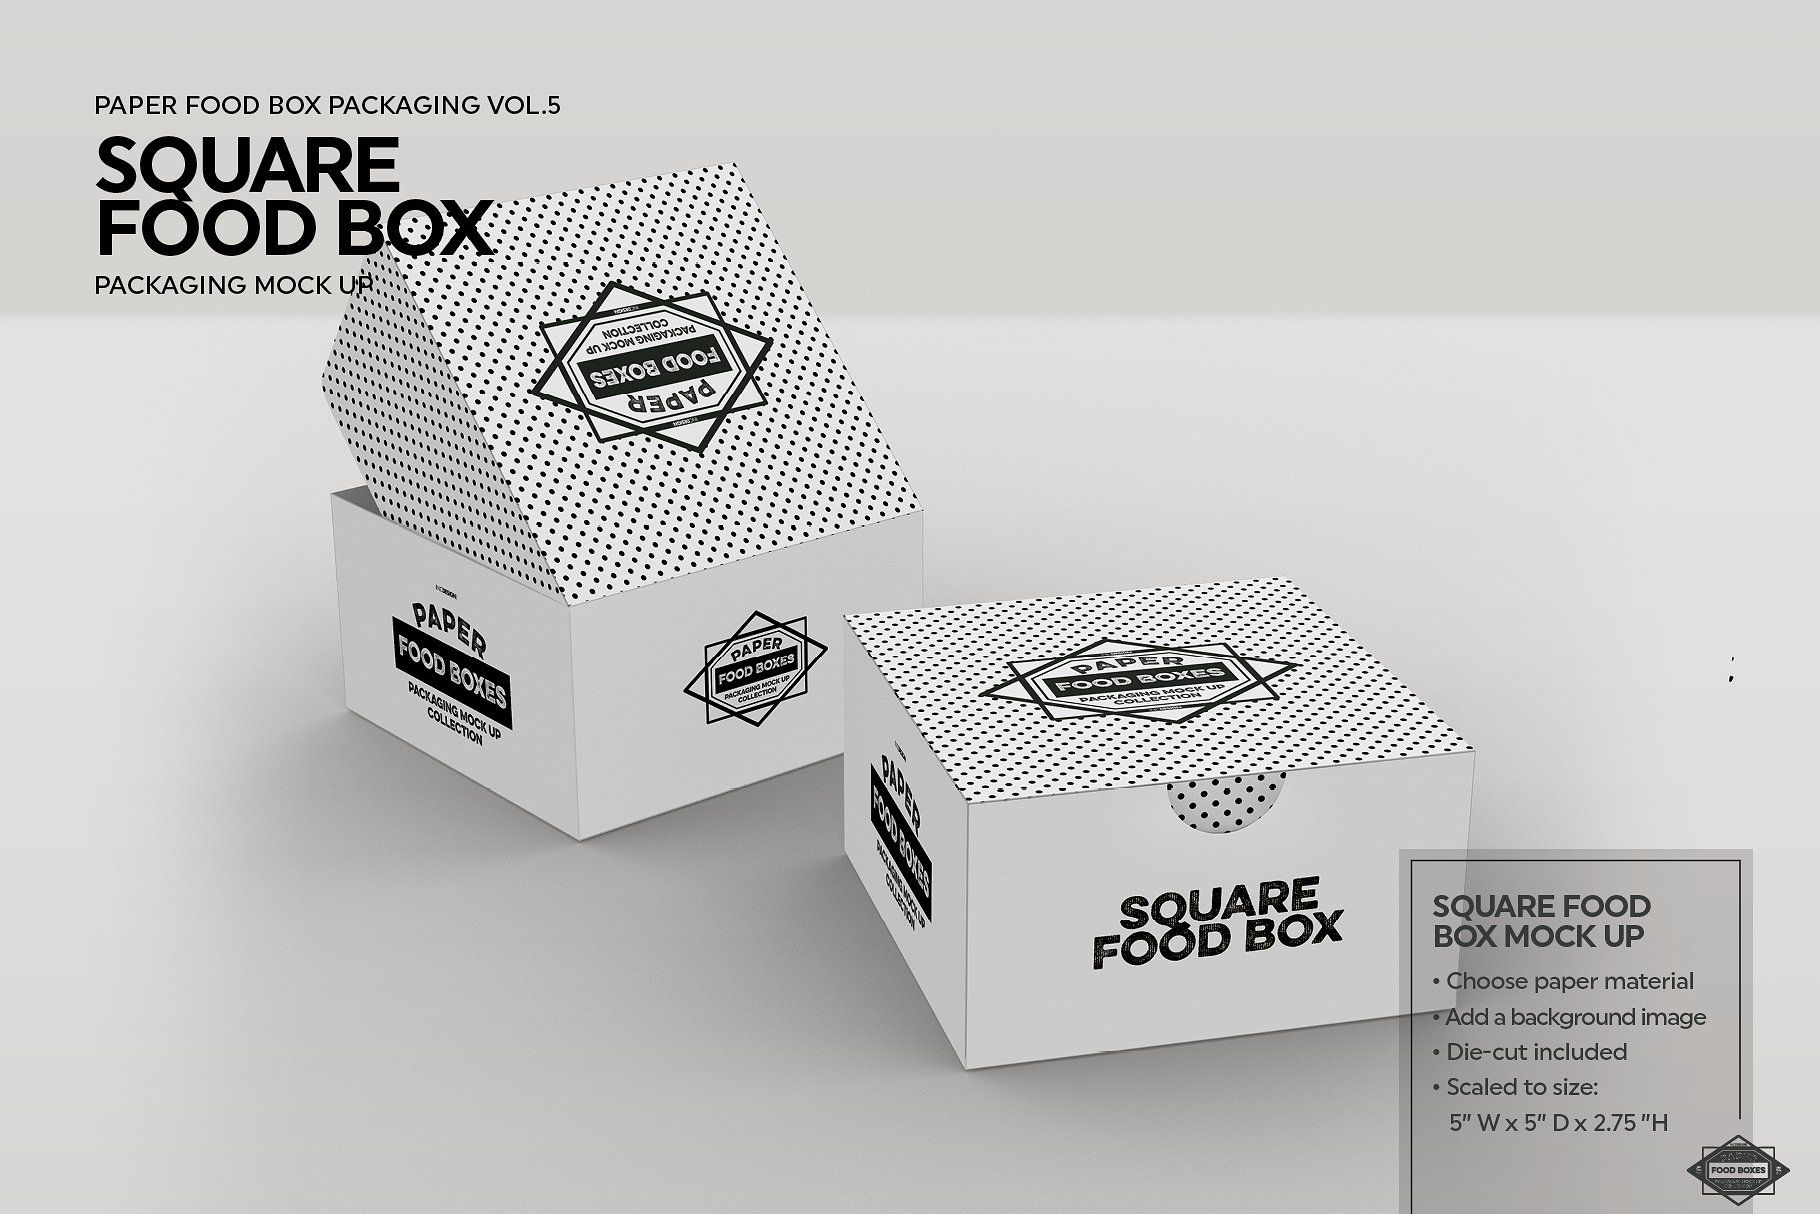 Download Square Fold Out Box Packaging Mockup Packaging Mockup Free Packaging Mockup Food Box Packaging